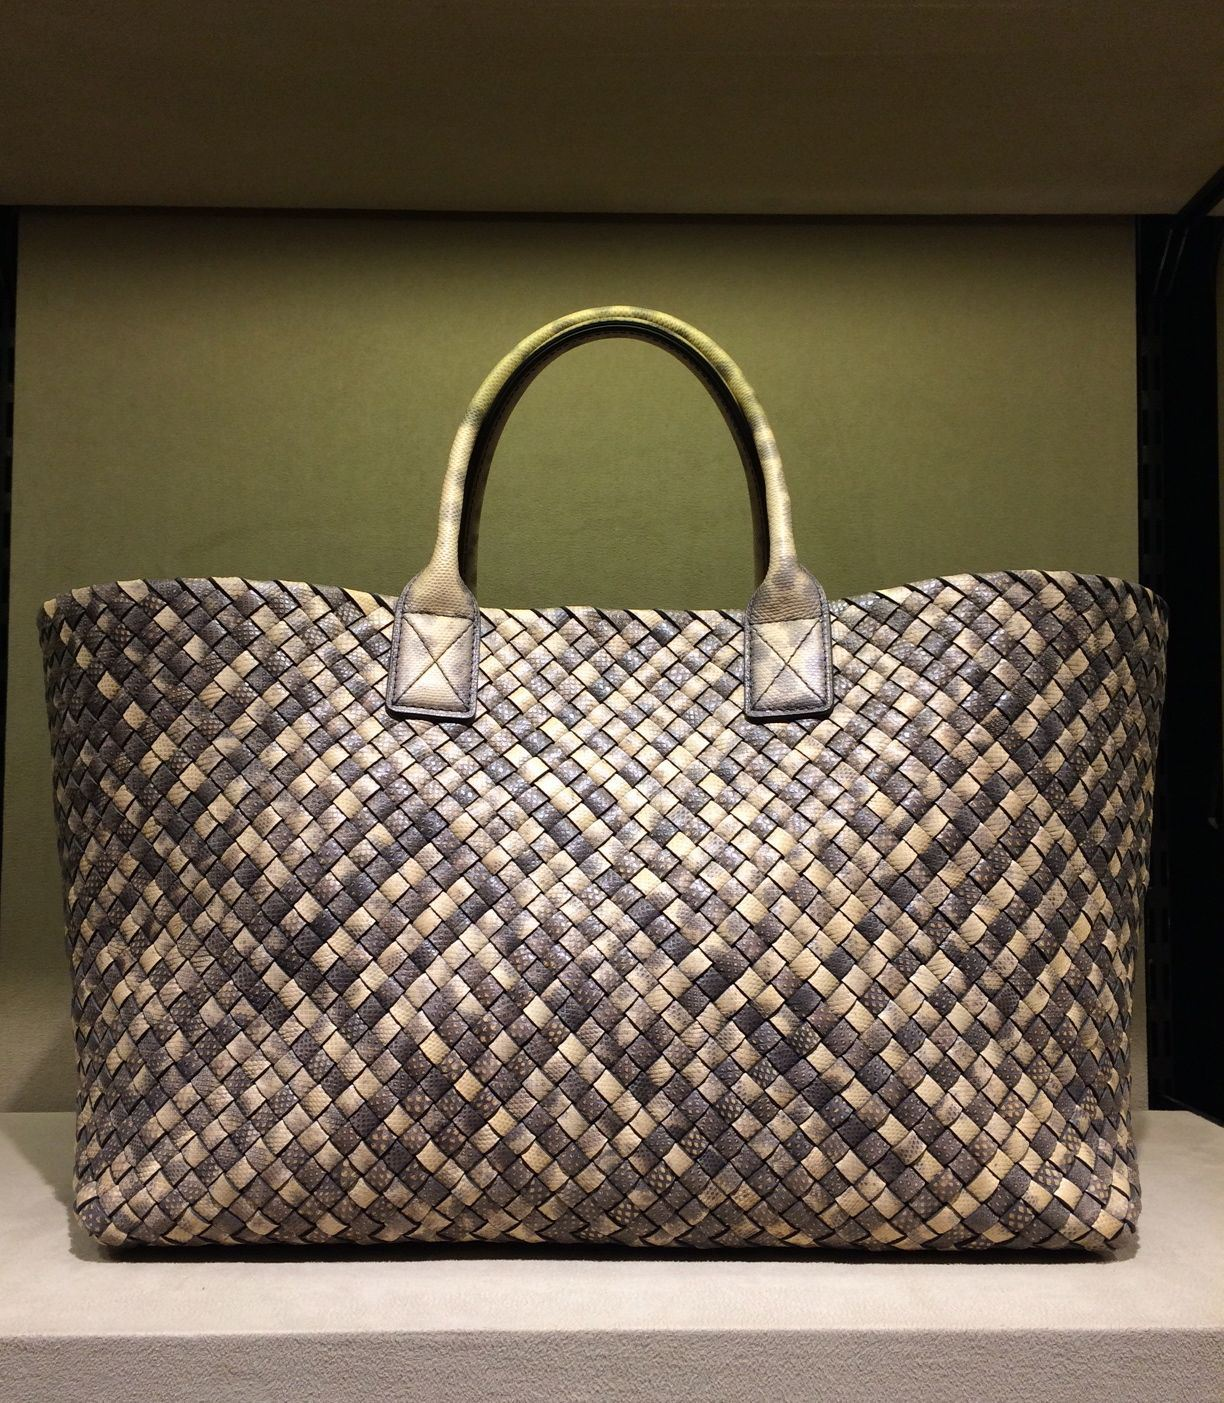 Preview of Bottega Veneta Spring / Summer 2015 Bags from ...